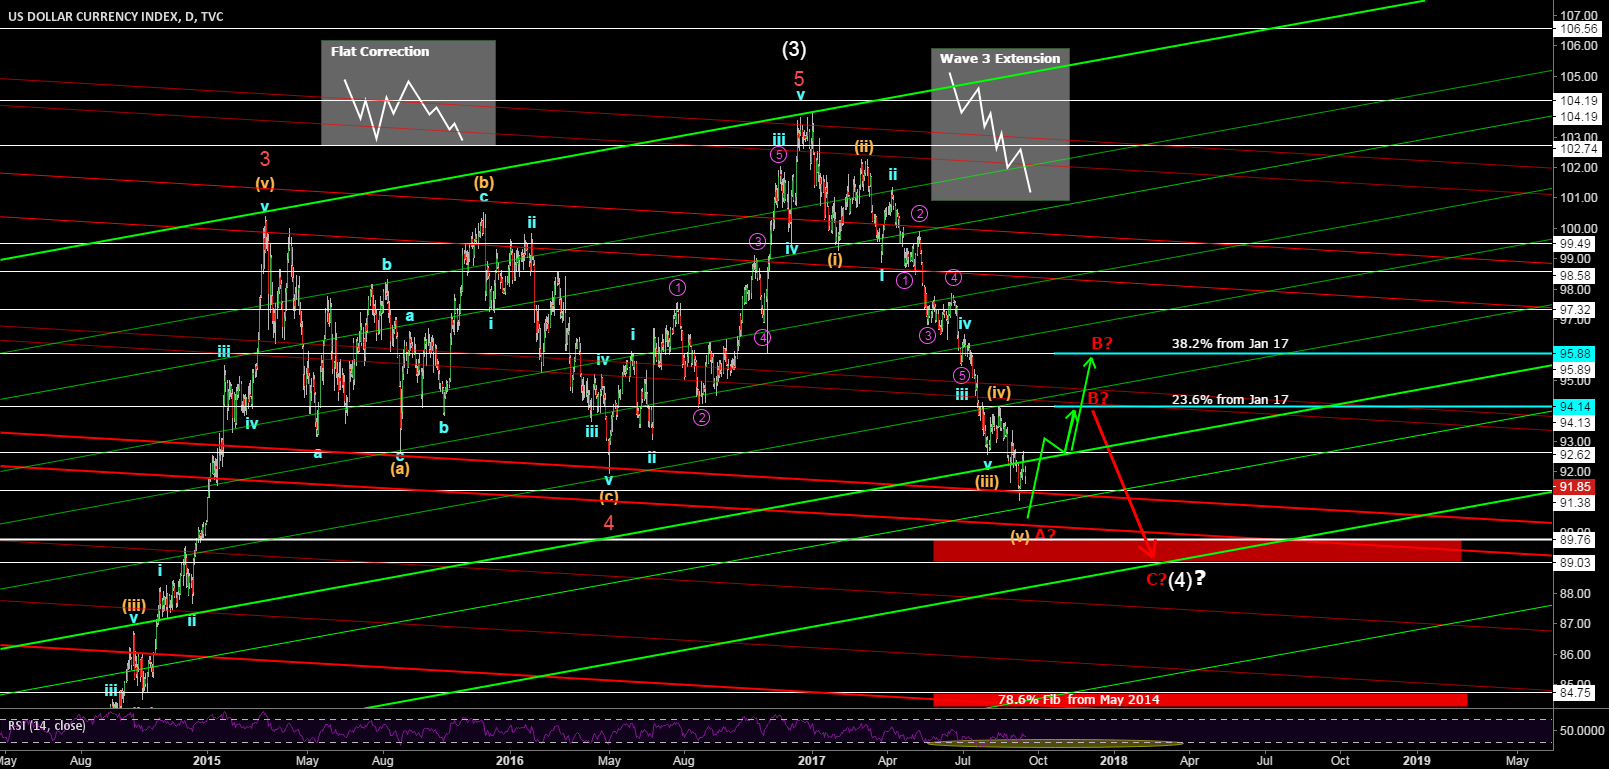 DXY - Expect a correction